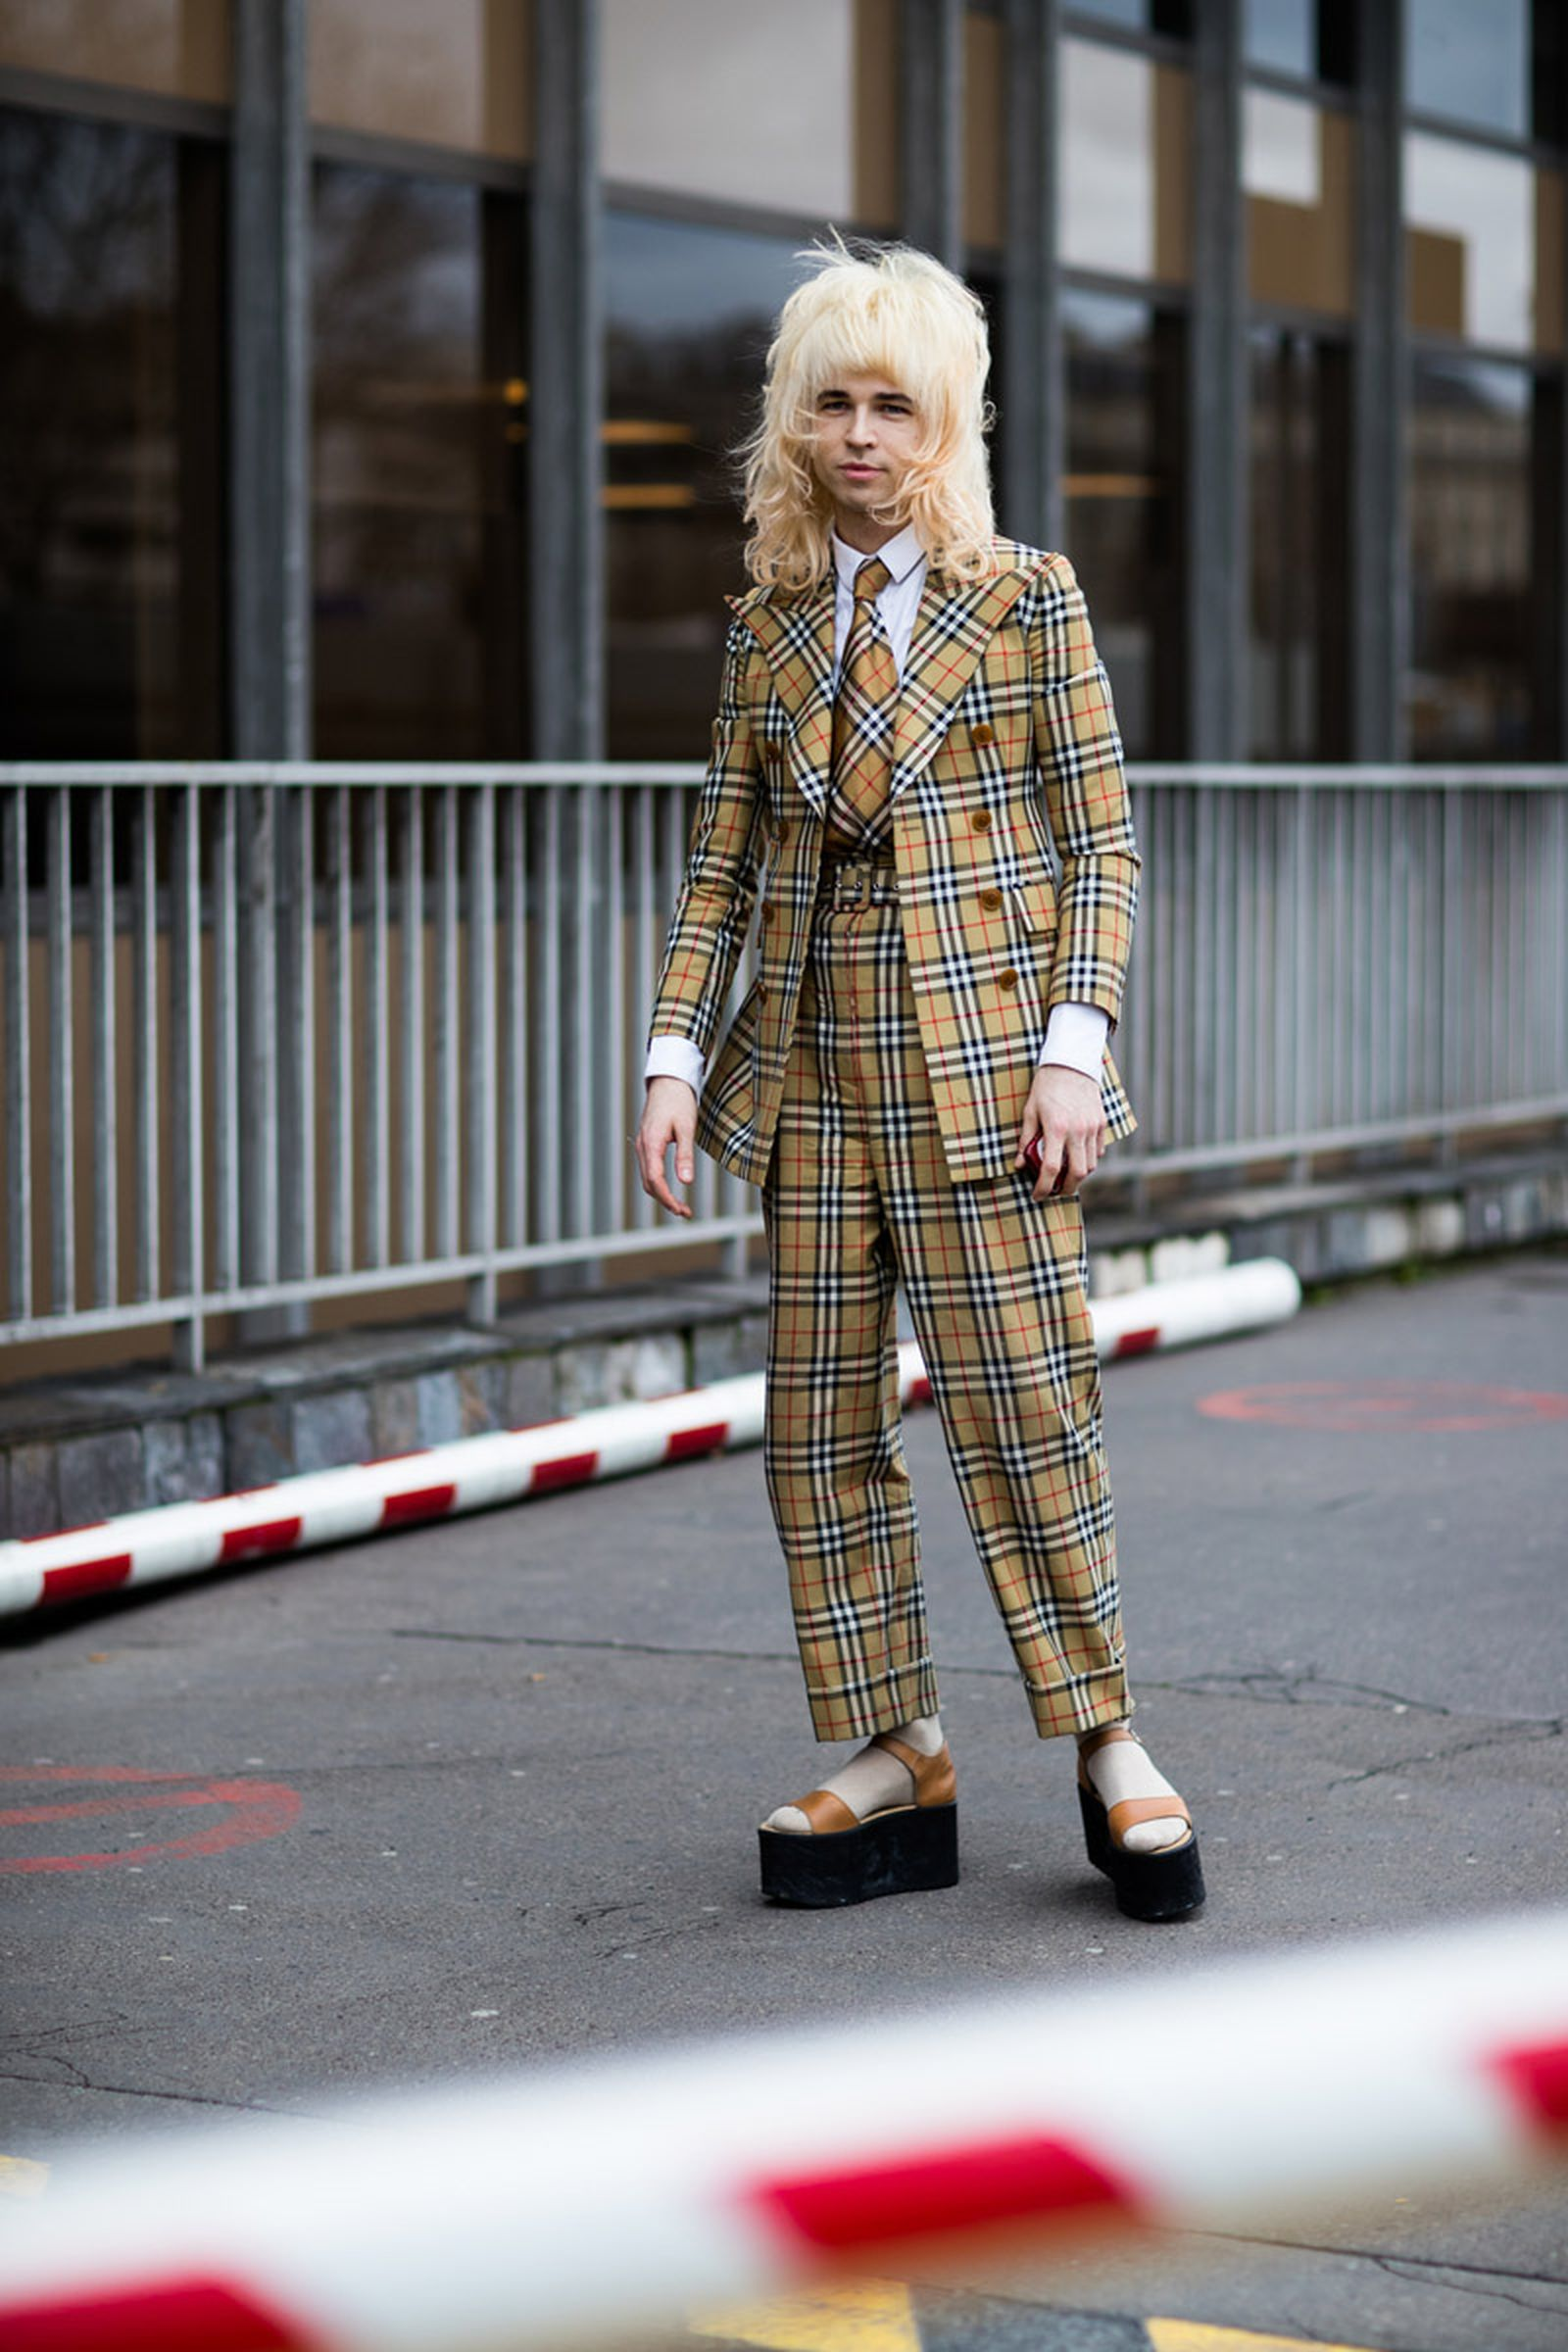 20paris fashion week womens street style fw19 Maisie Williams Maison Margiela Michèle Lamy